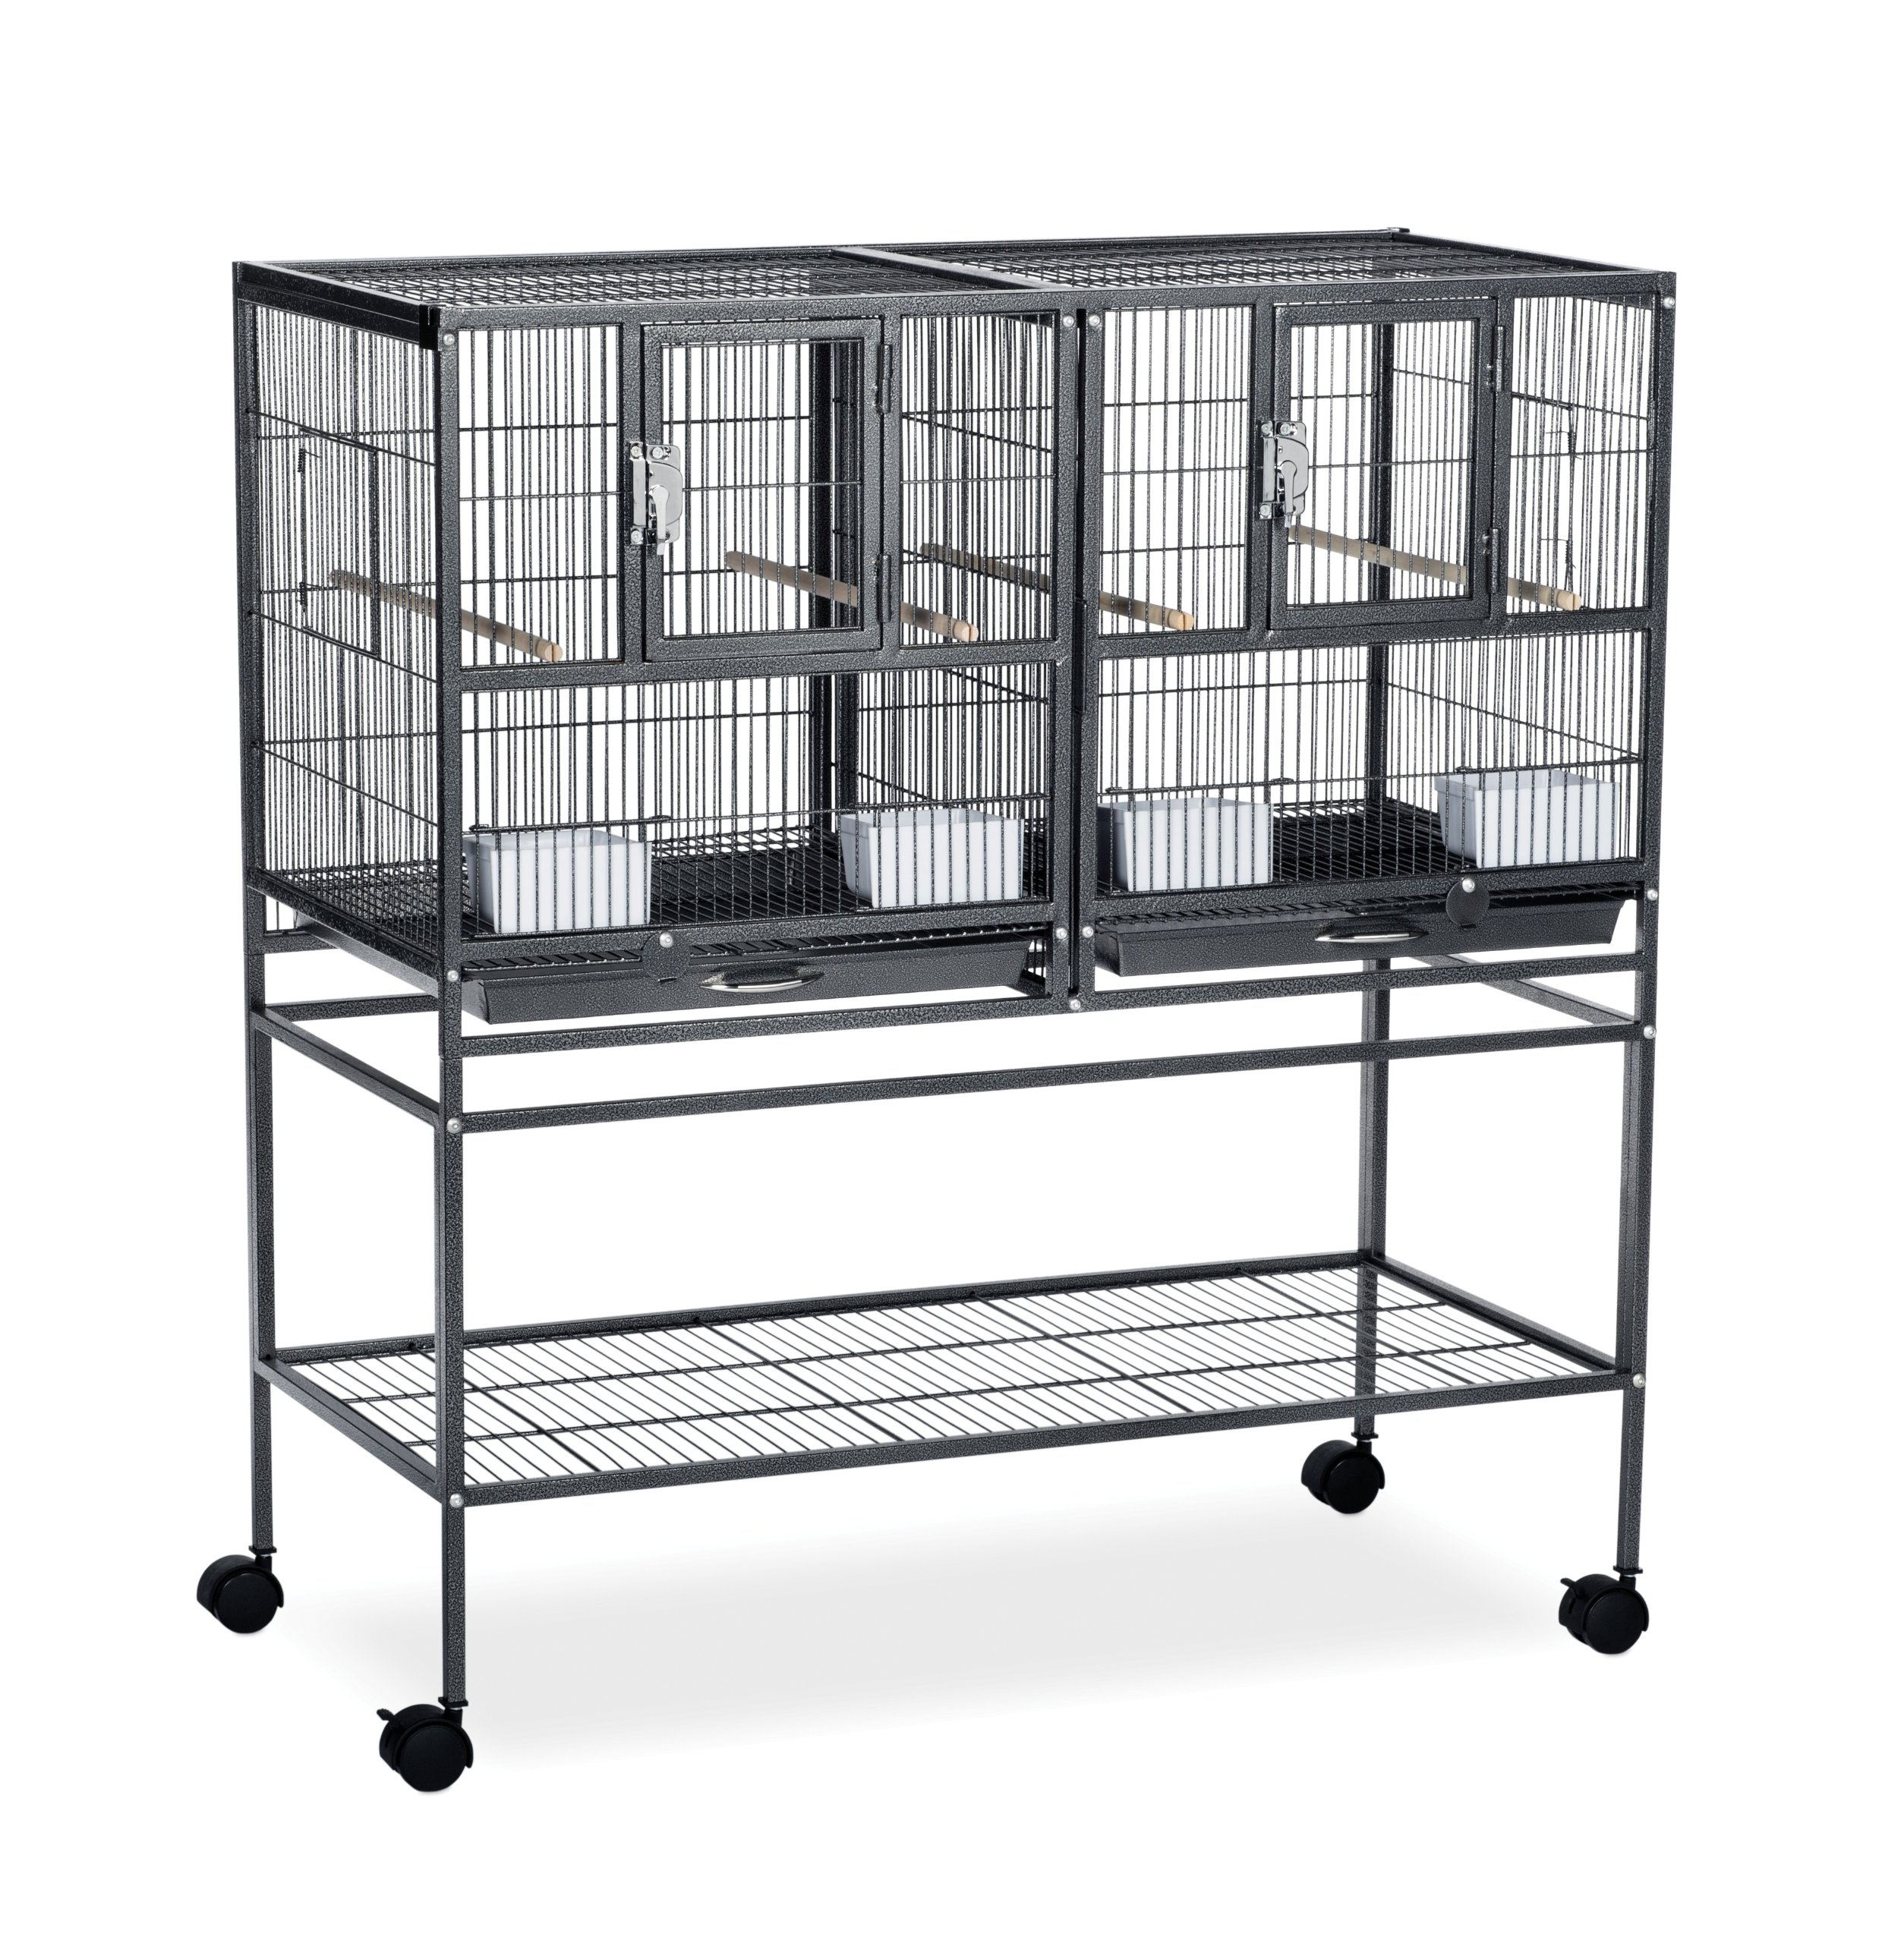 Prevue Pet Products F070 Hampton Deluxe Divided Breeder Cage with Stand by Prevue Pet Products